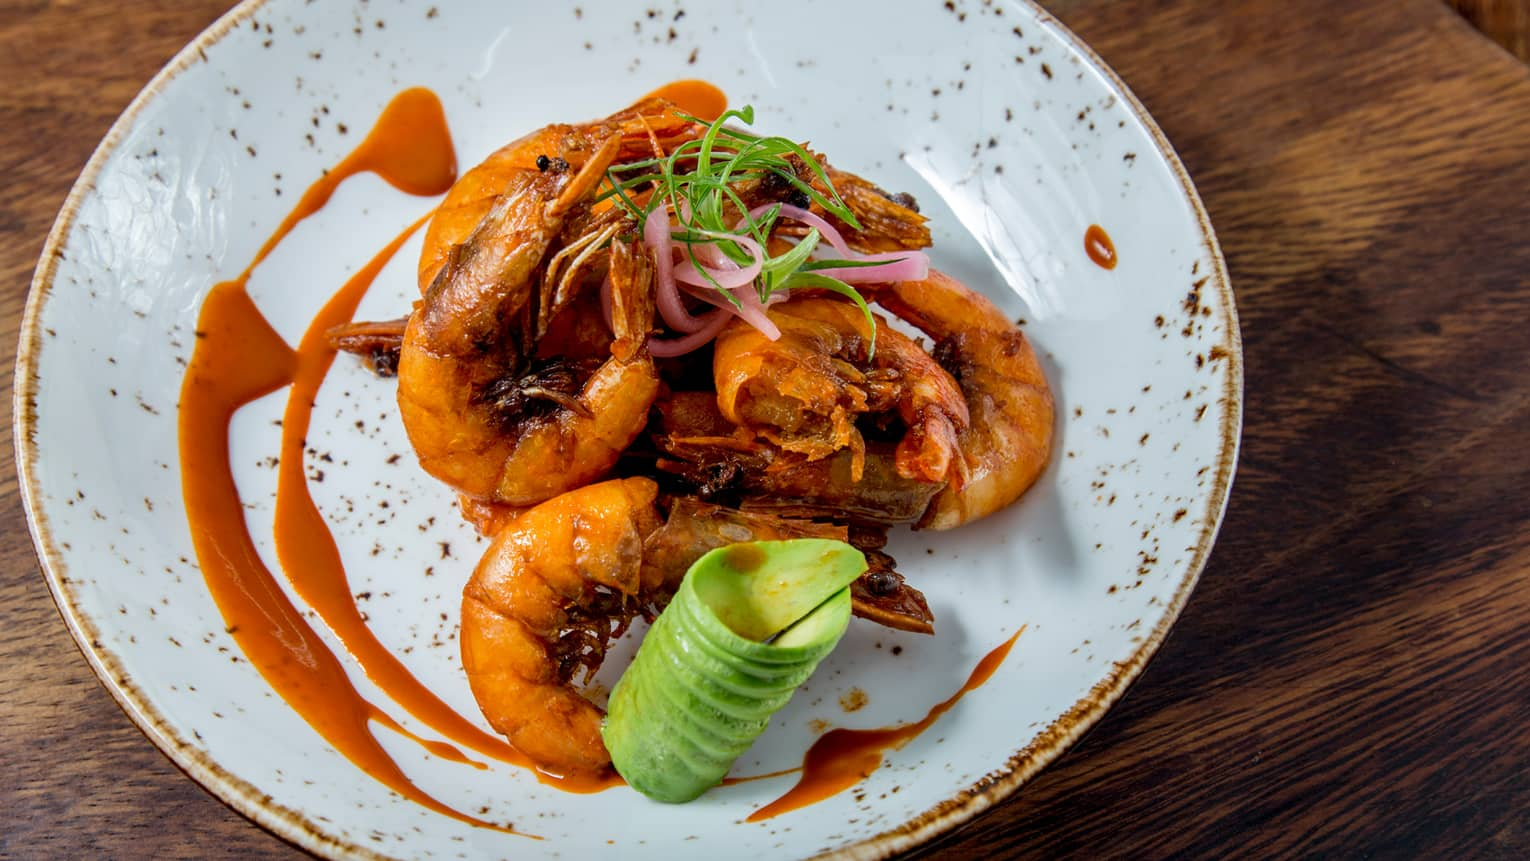 Fried seafood in sauce on plate with avocado spiral